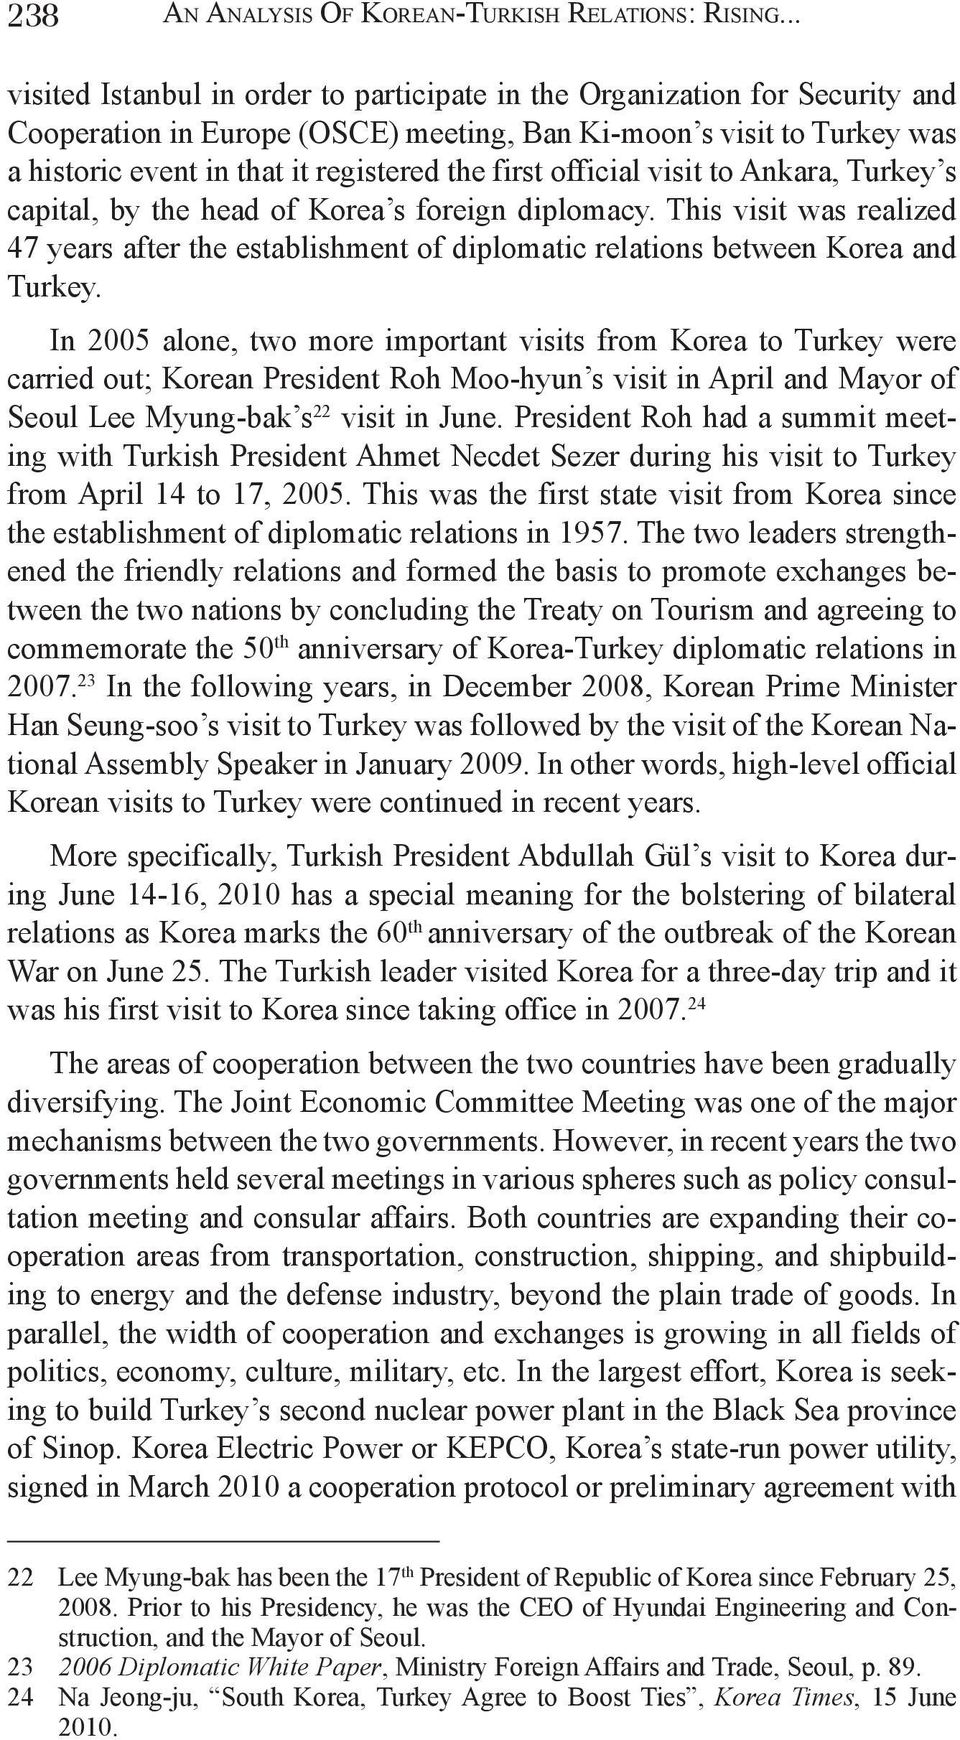 first official visit to Ankara, Turkey s capital, by the head of Korea s foreign diplomacy. This visit was realized 47 years after the establishment of diplomatic relations between Korea and Turkey.